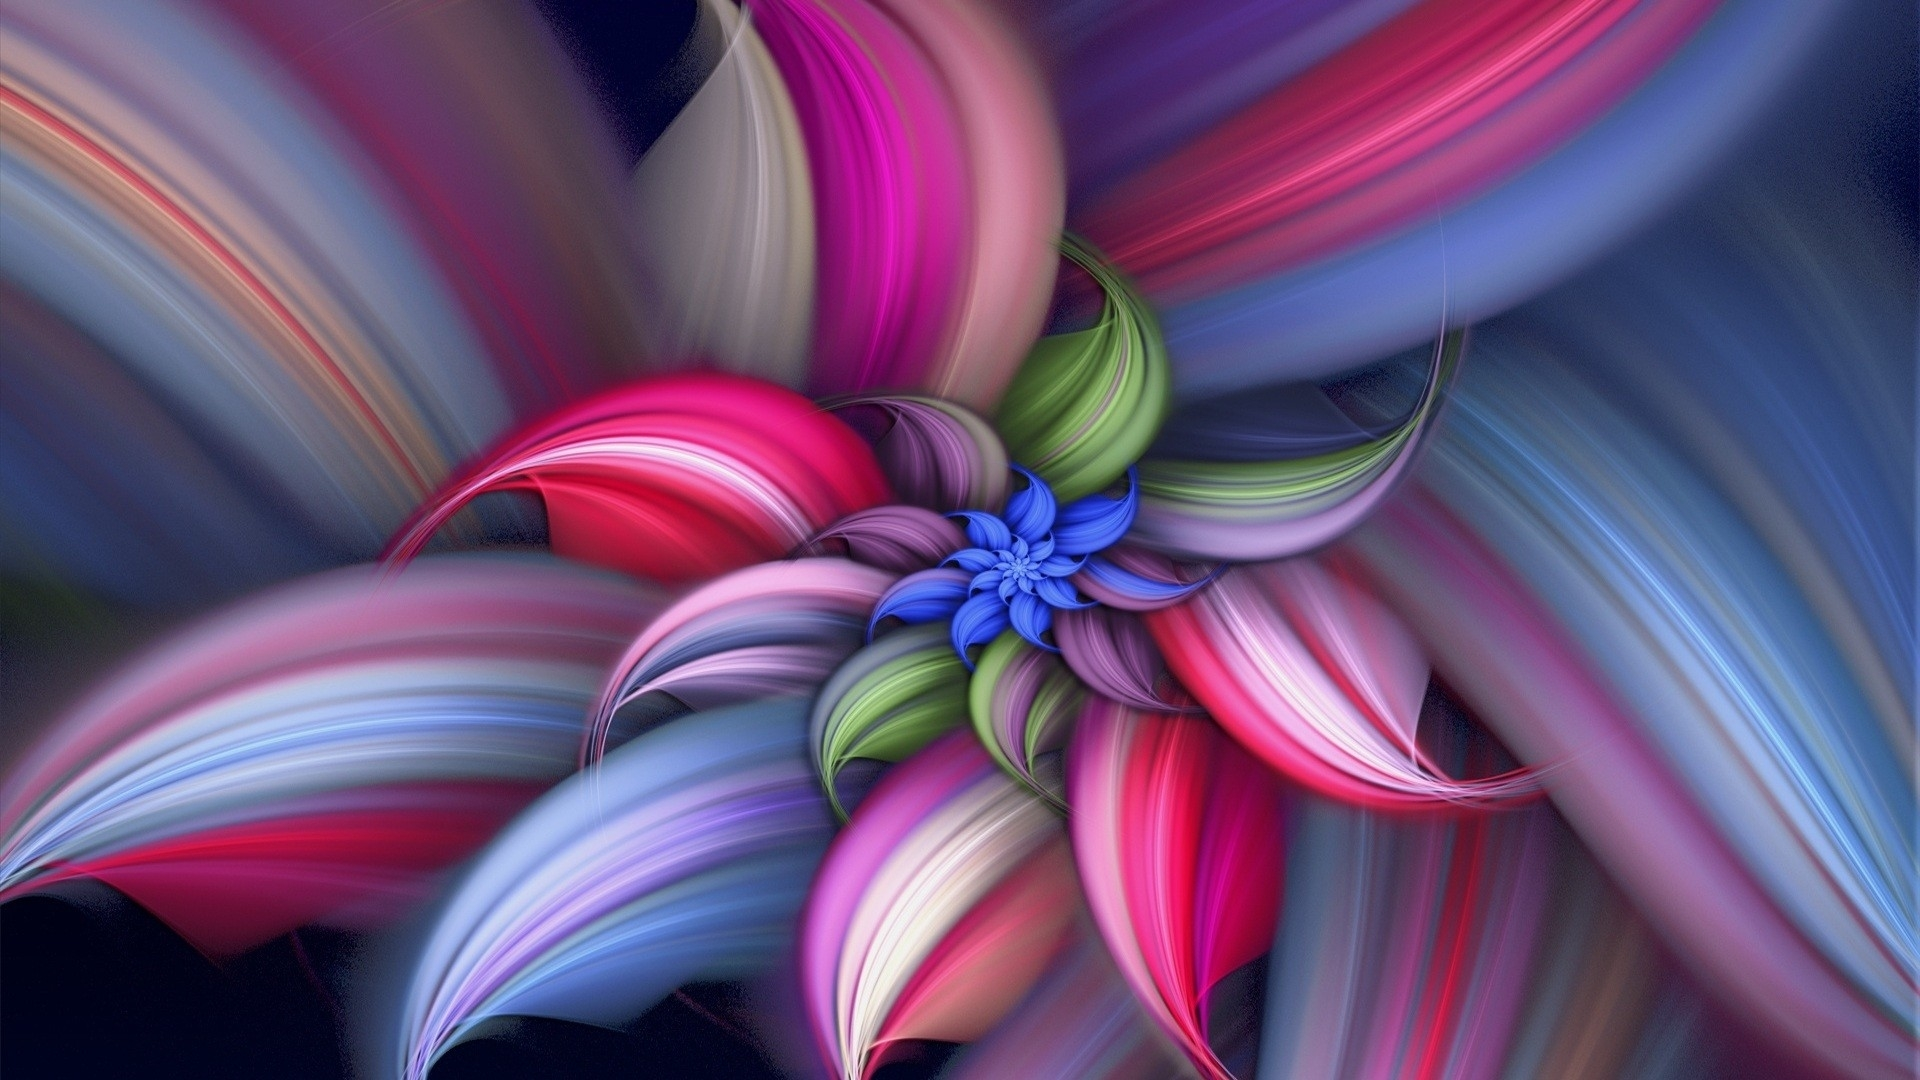 Flower images download banner freeuse library Abstract Flower Download banner freeuse library